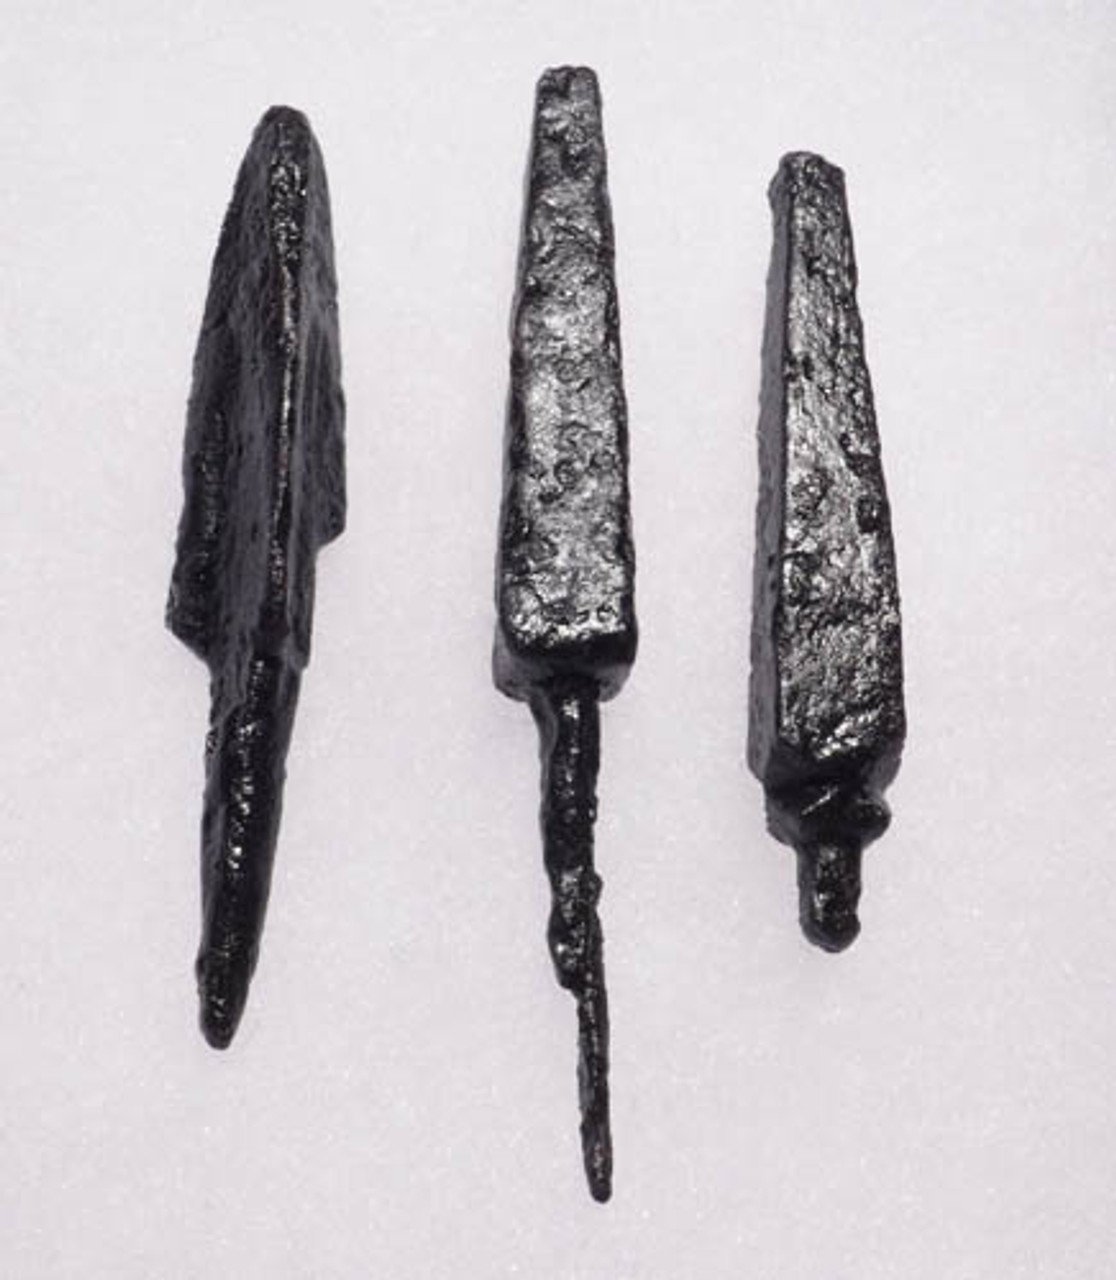 NE116 - SET OF 3 INTACT IRON ARMOR-PIERCING PROJECTILE POINT ARROWHEADS FROM THE EURASIAN STEPPE NOMAD TRIBES